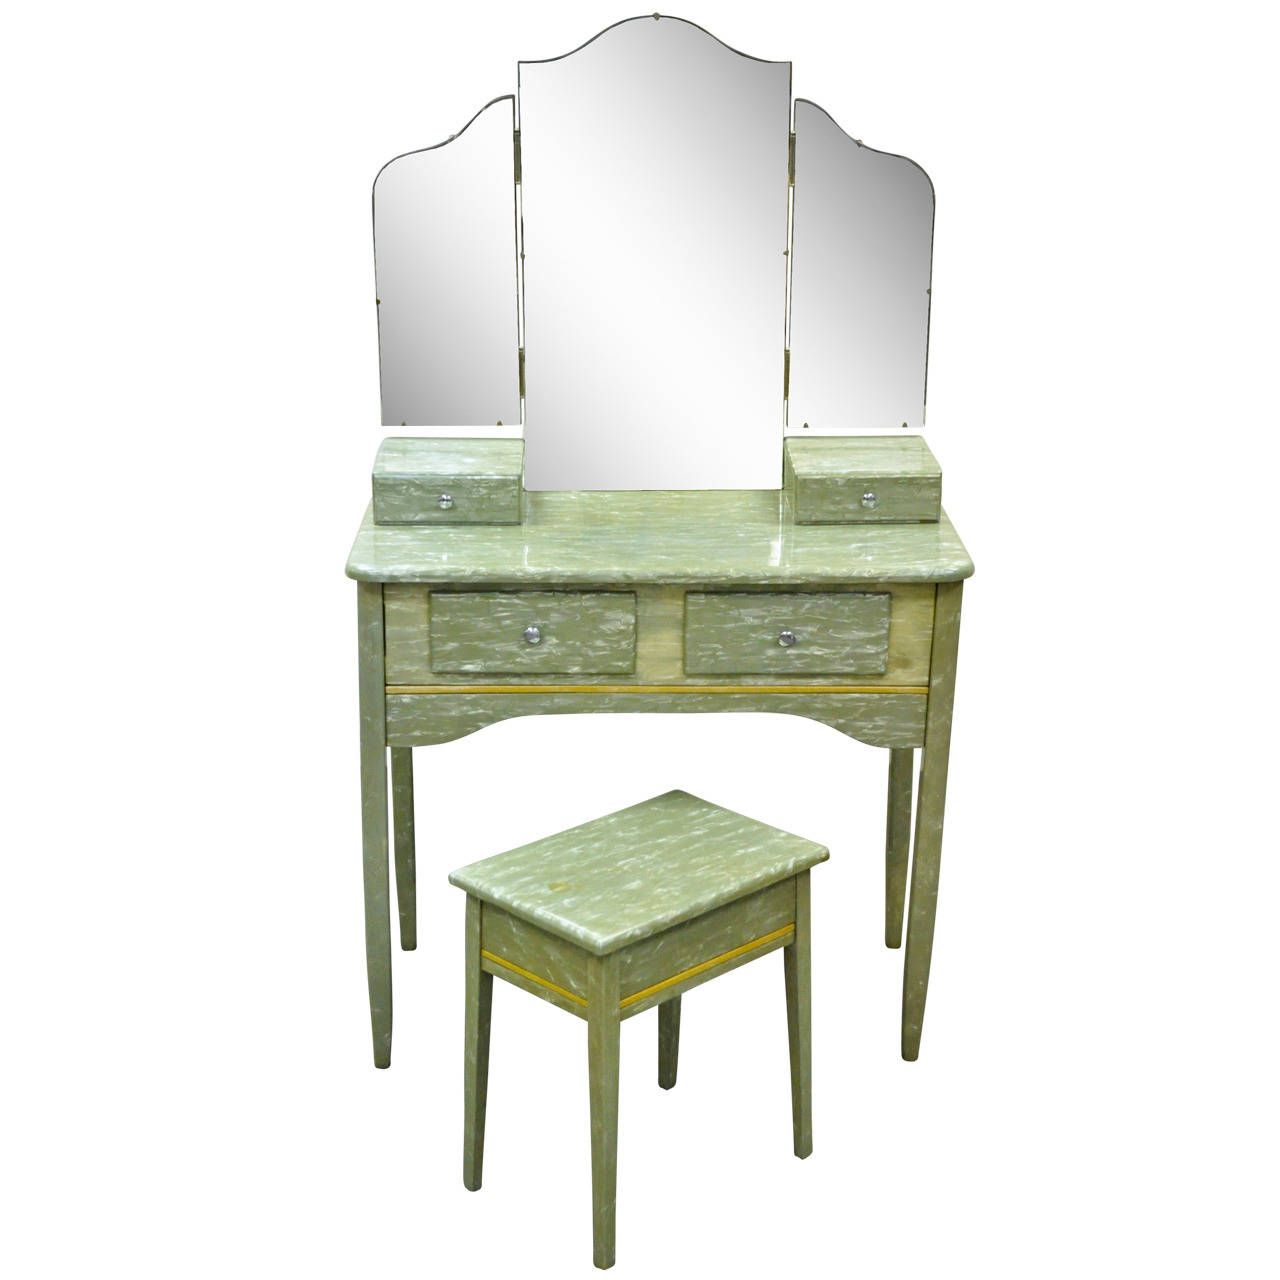 Rare Art Deco Green Celluloid Covered Vanity With Tri Fold Mirror And Bench 1stdibs Com Art Deco Dressing Table Furniture Mid Century Modern Furniture